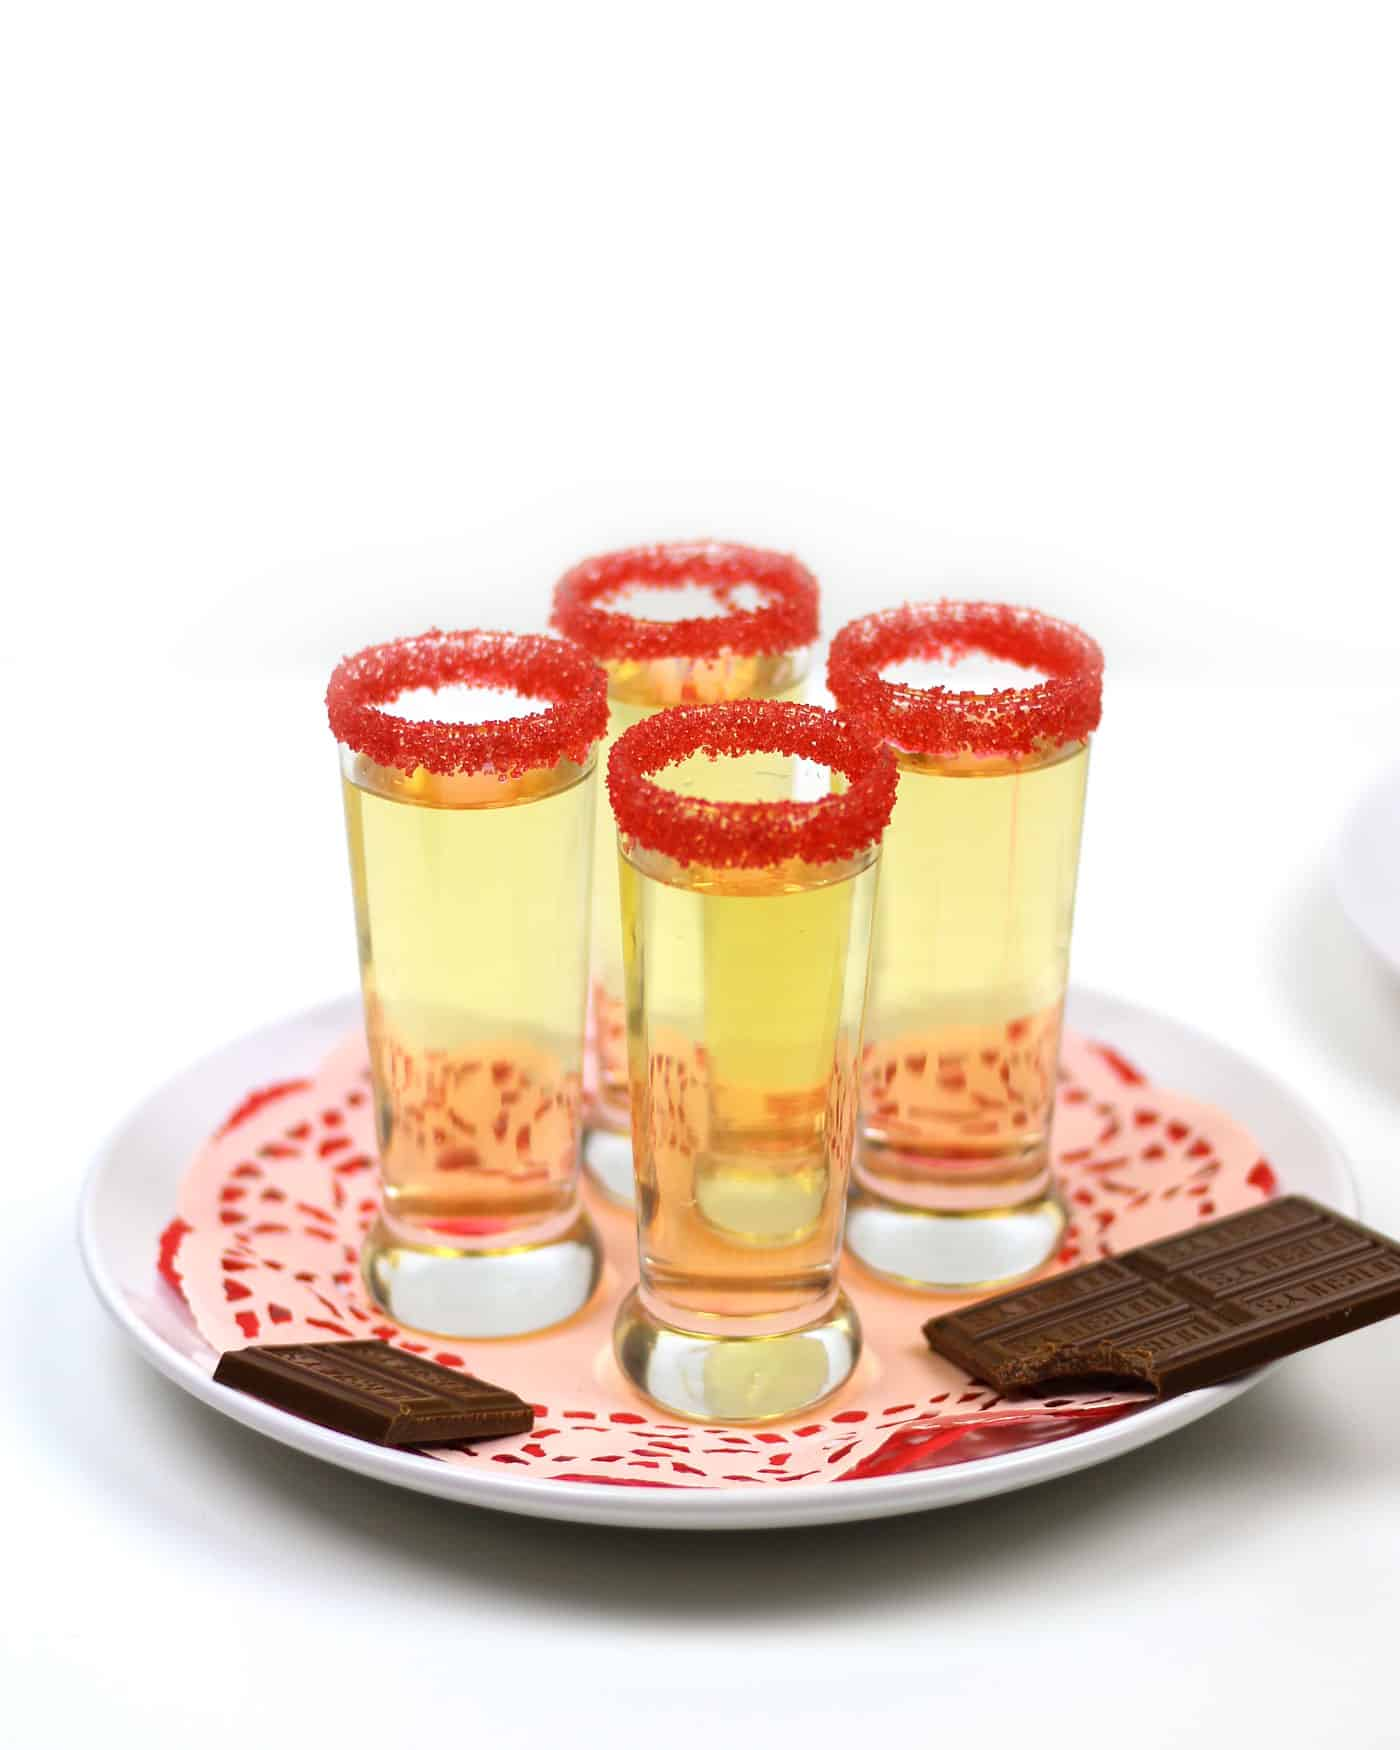 Oh yes! Chocolate Cake Shooters seriously taste just like chocolate cake! Hazelnut liqueur, vanilla vodka and lemon juice come together for a surprising flavor explosion. The perfect party treat for Valentine's Day, birthdays and more! (via feastandwest.com)